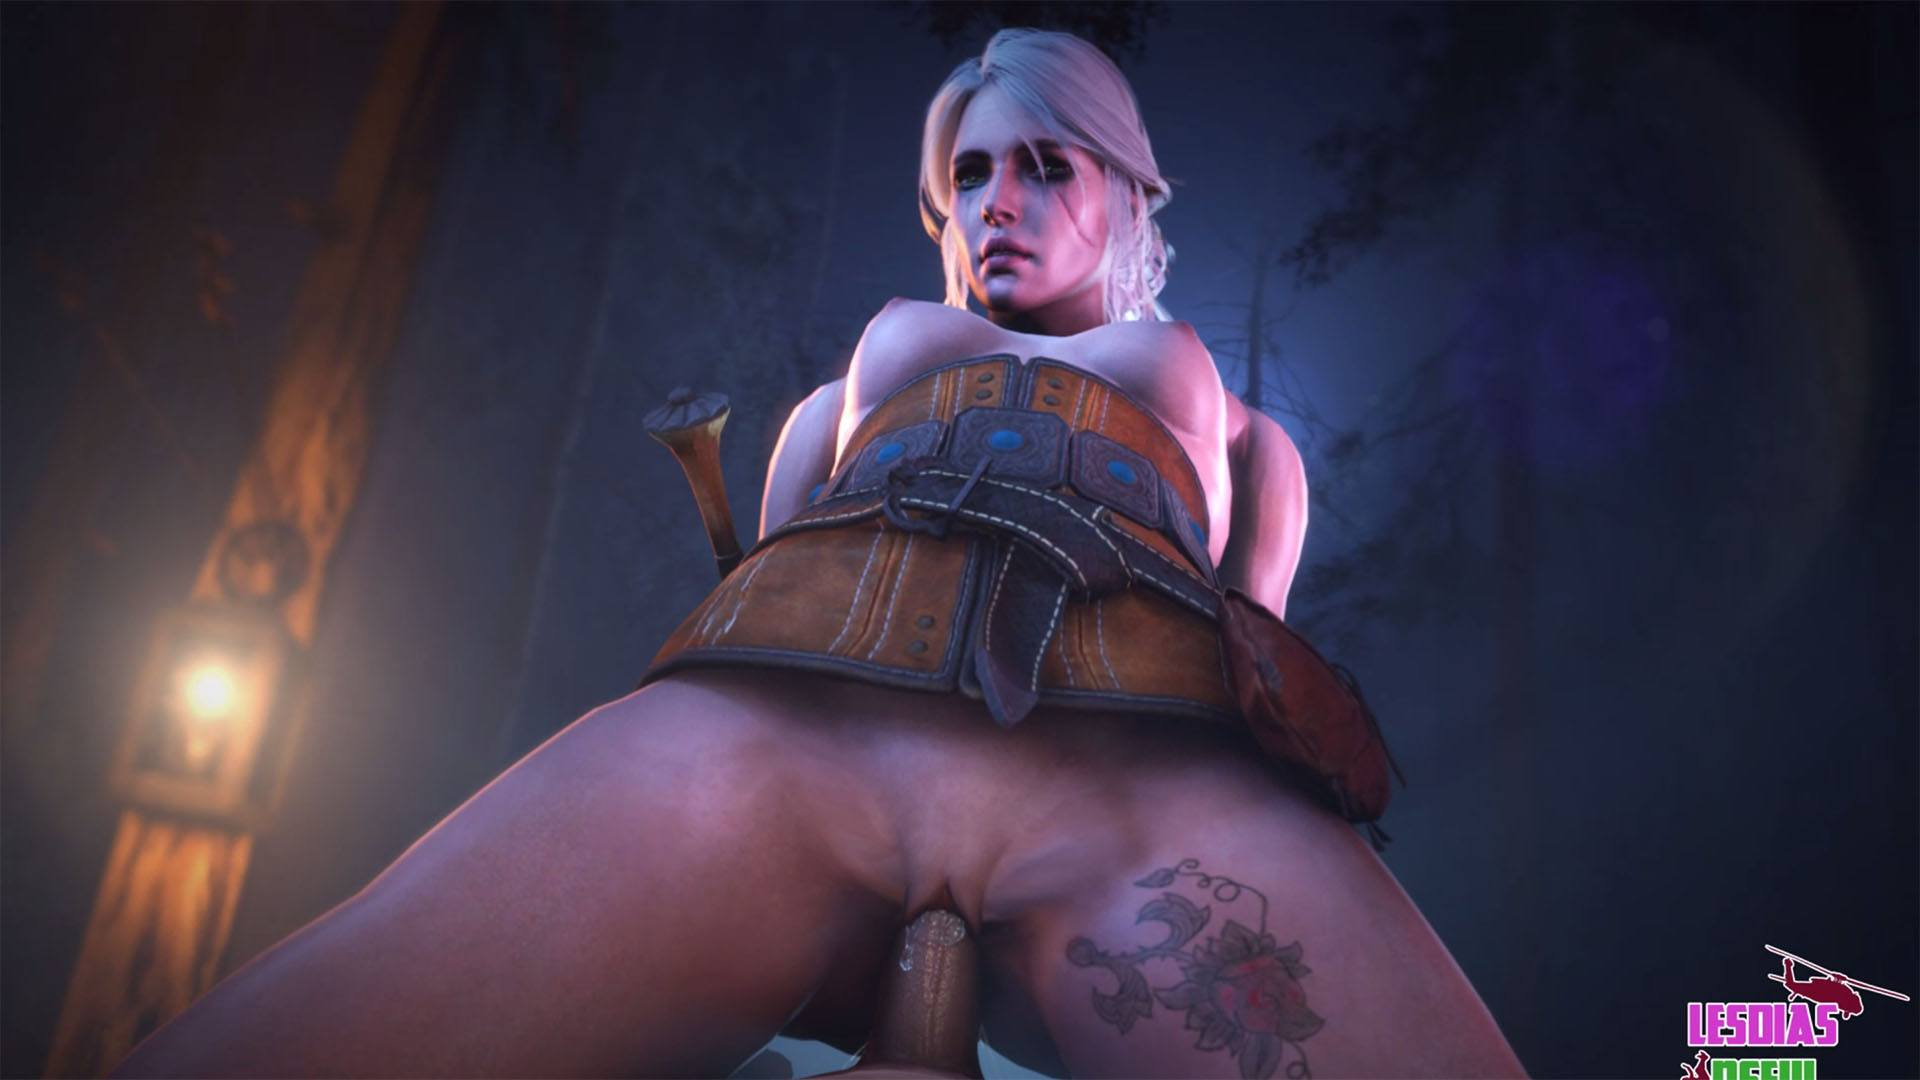 Shani witcher 3 sex scene - 1 part 8